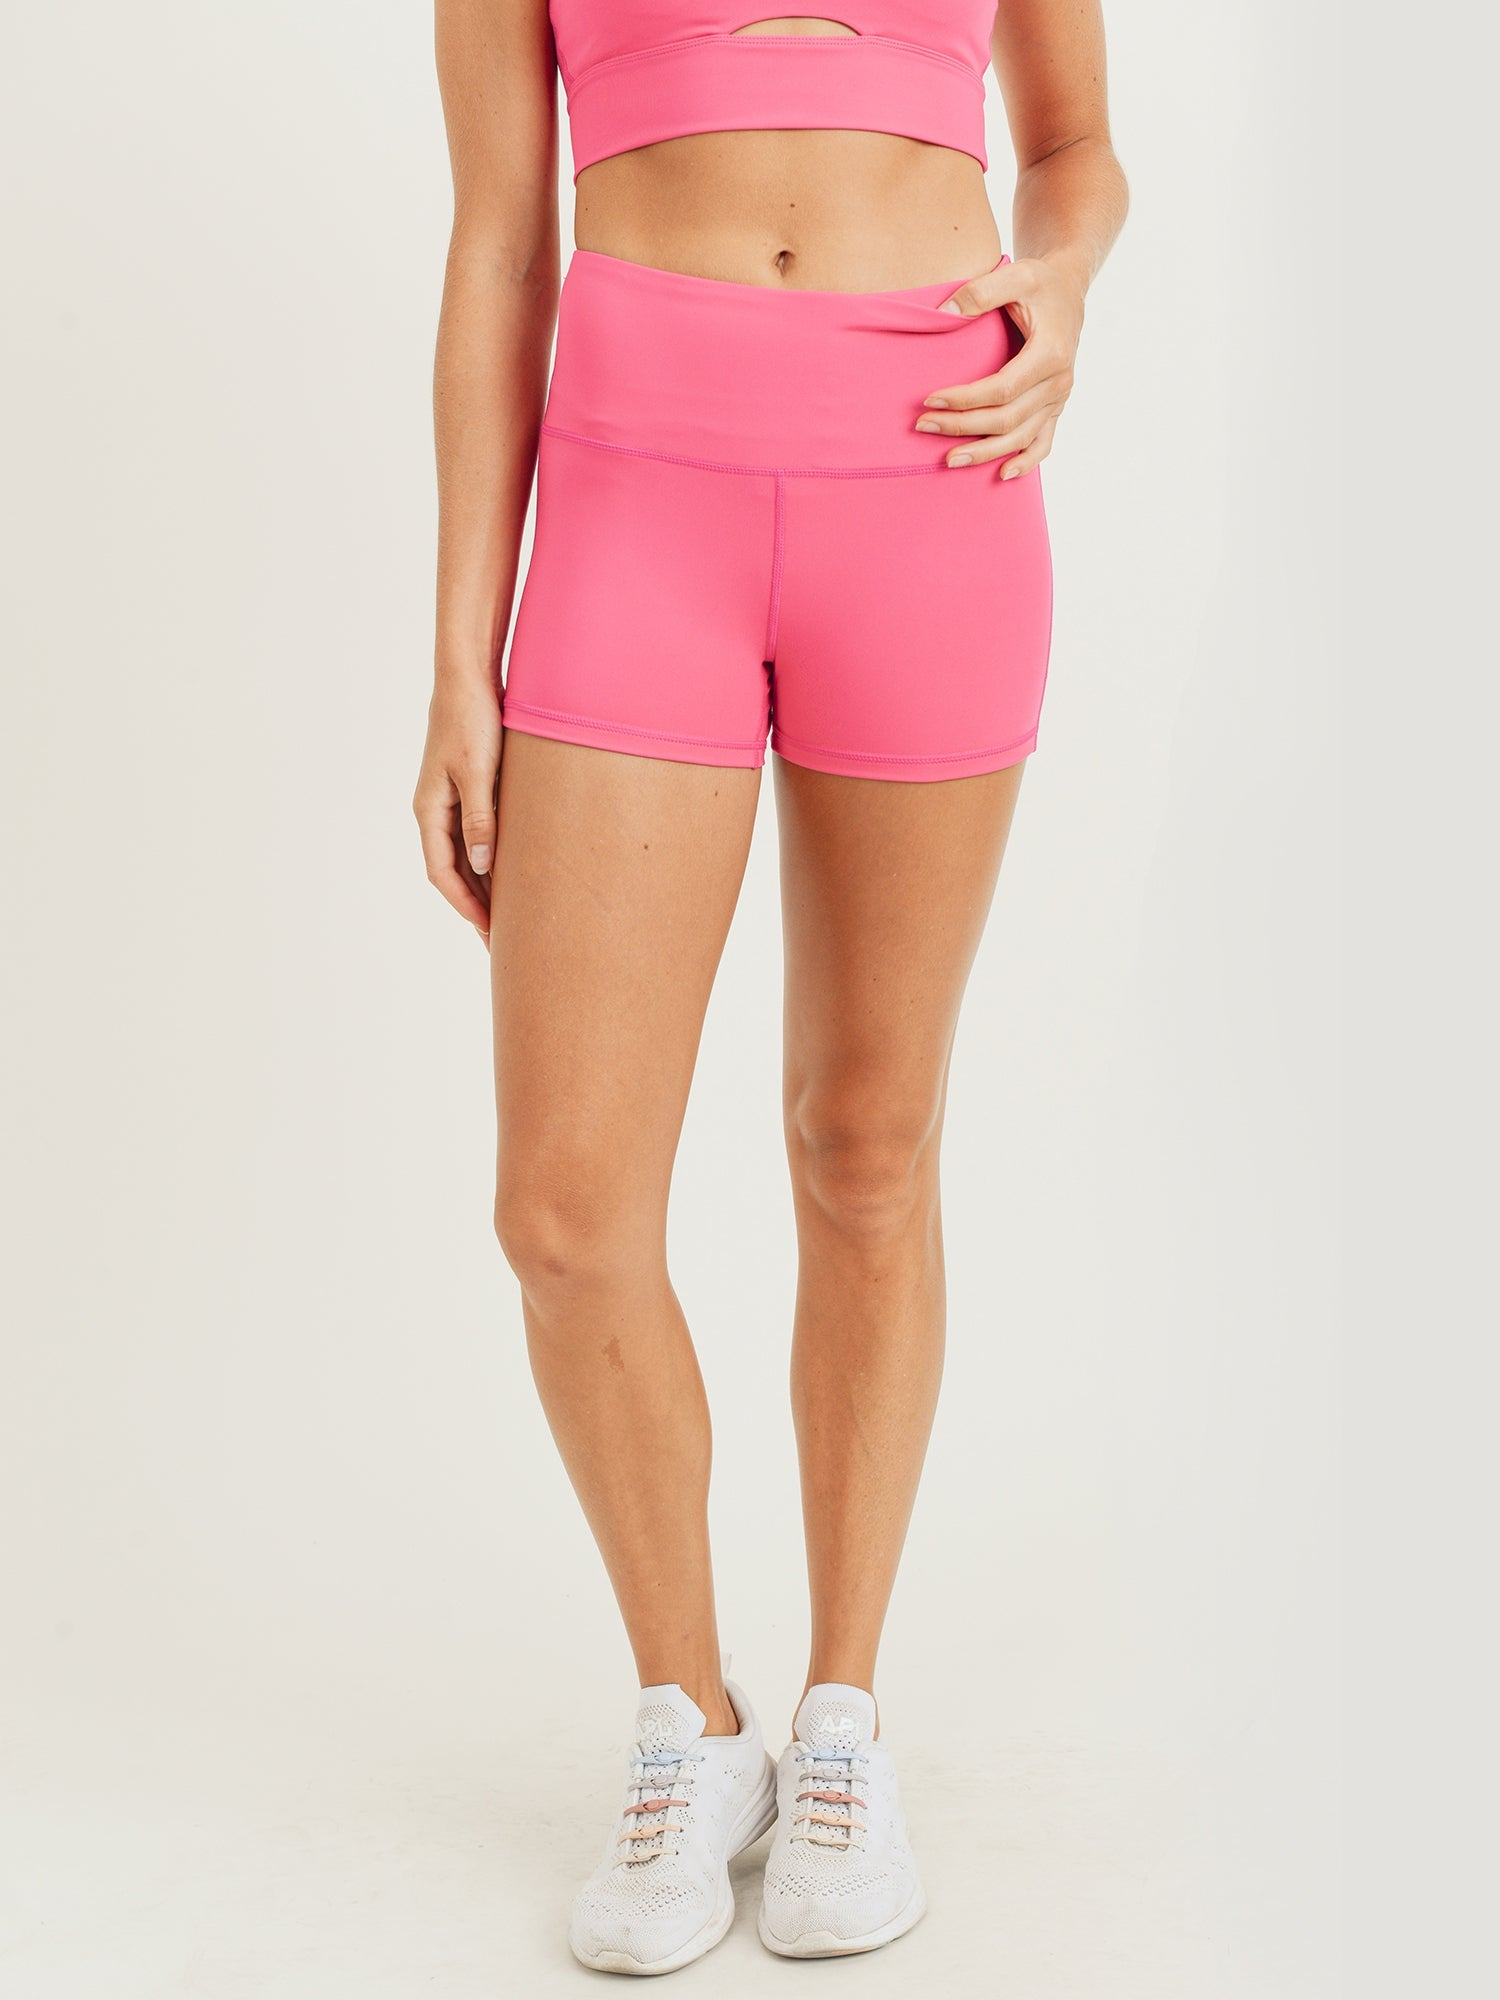 Layla Eco High Waisted Shorts - Pink